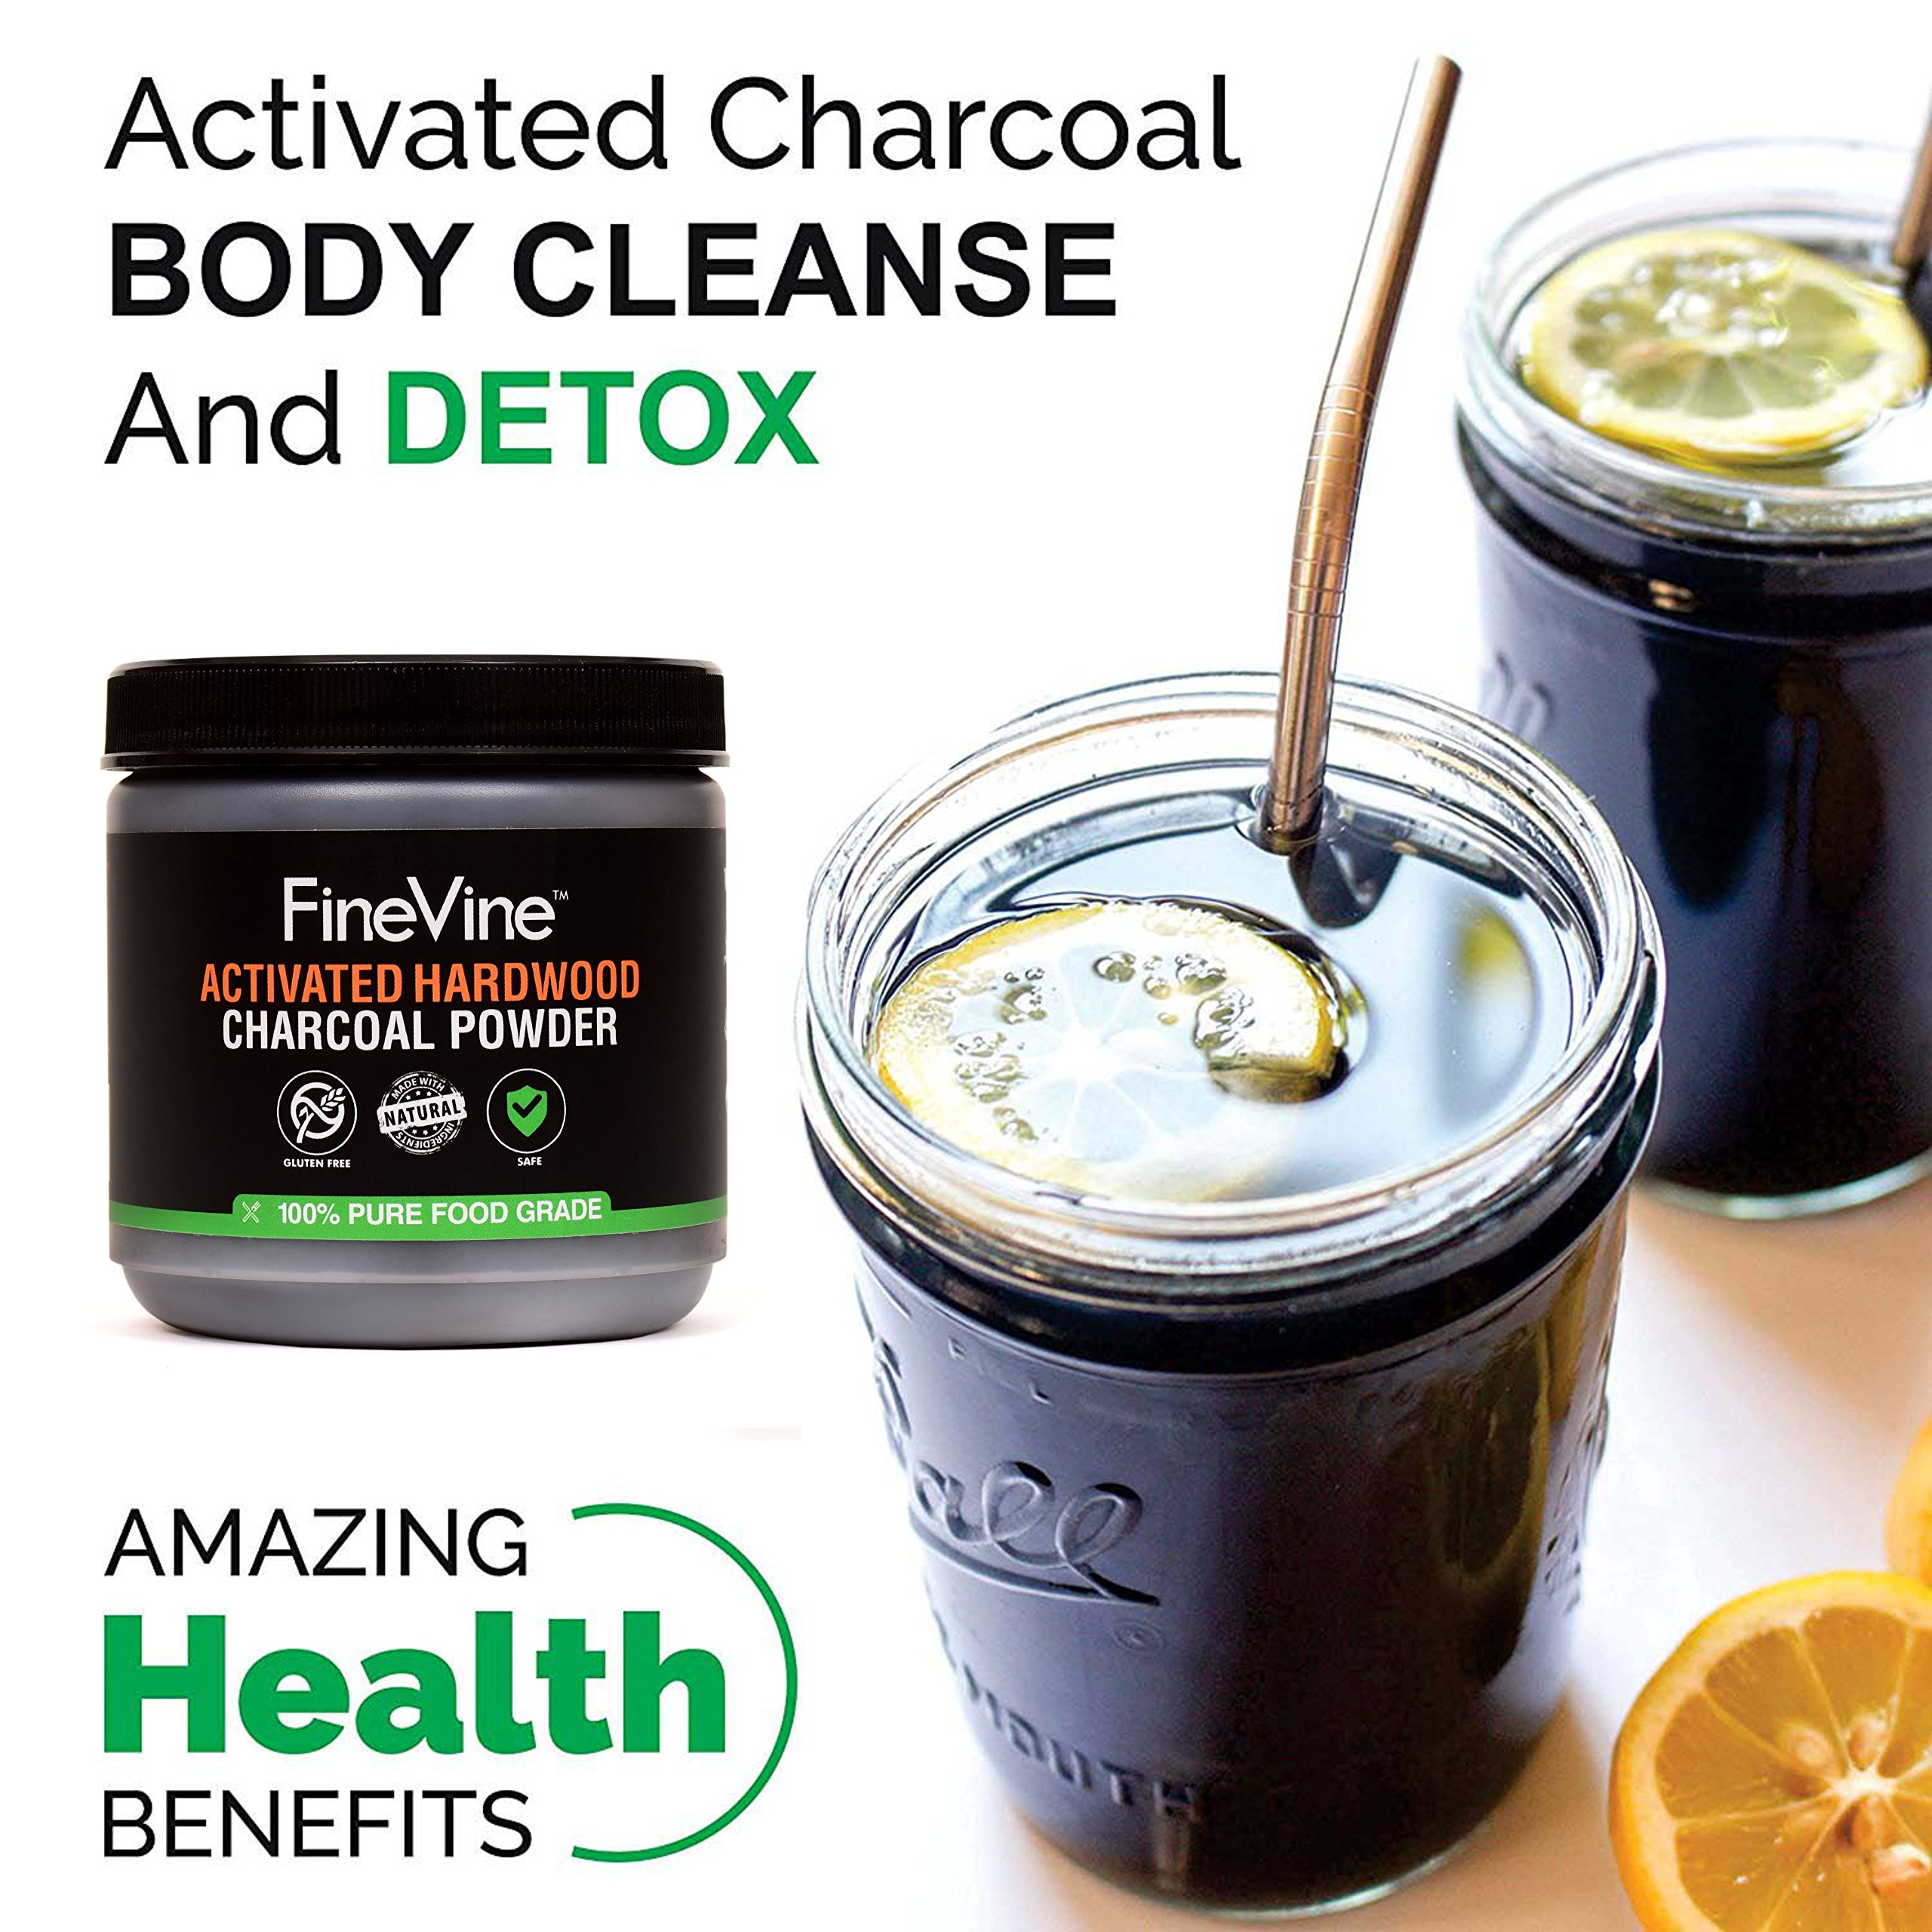 Activated Hardwood Charcoal Powder - Made in USA - Food Grade for Detox, Teeth whitening, Face Mask, Helps Digestion, Bug Bites, Treats Poisoning and Wounds. by FineVine (Image #5)